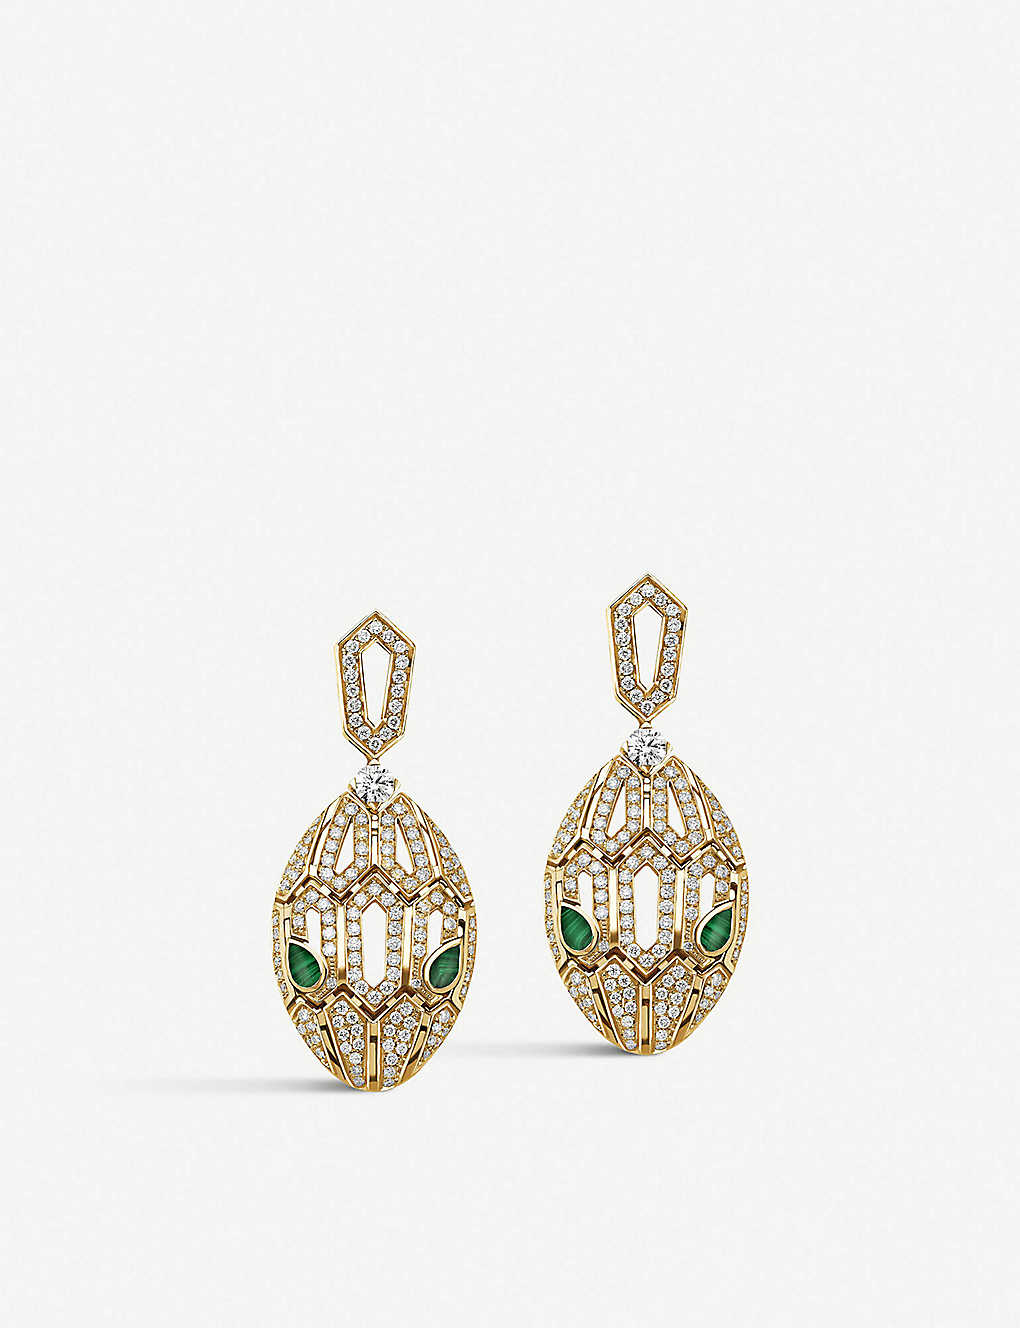 Serpenti 18ct Gold with Emerald and Pavé Diamonds Earrings